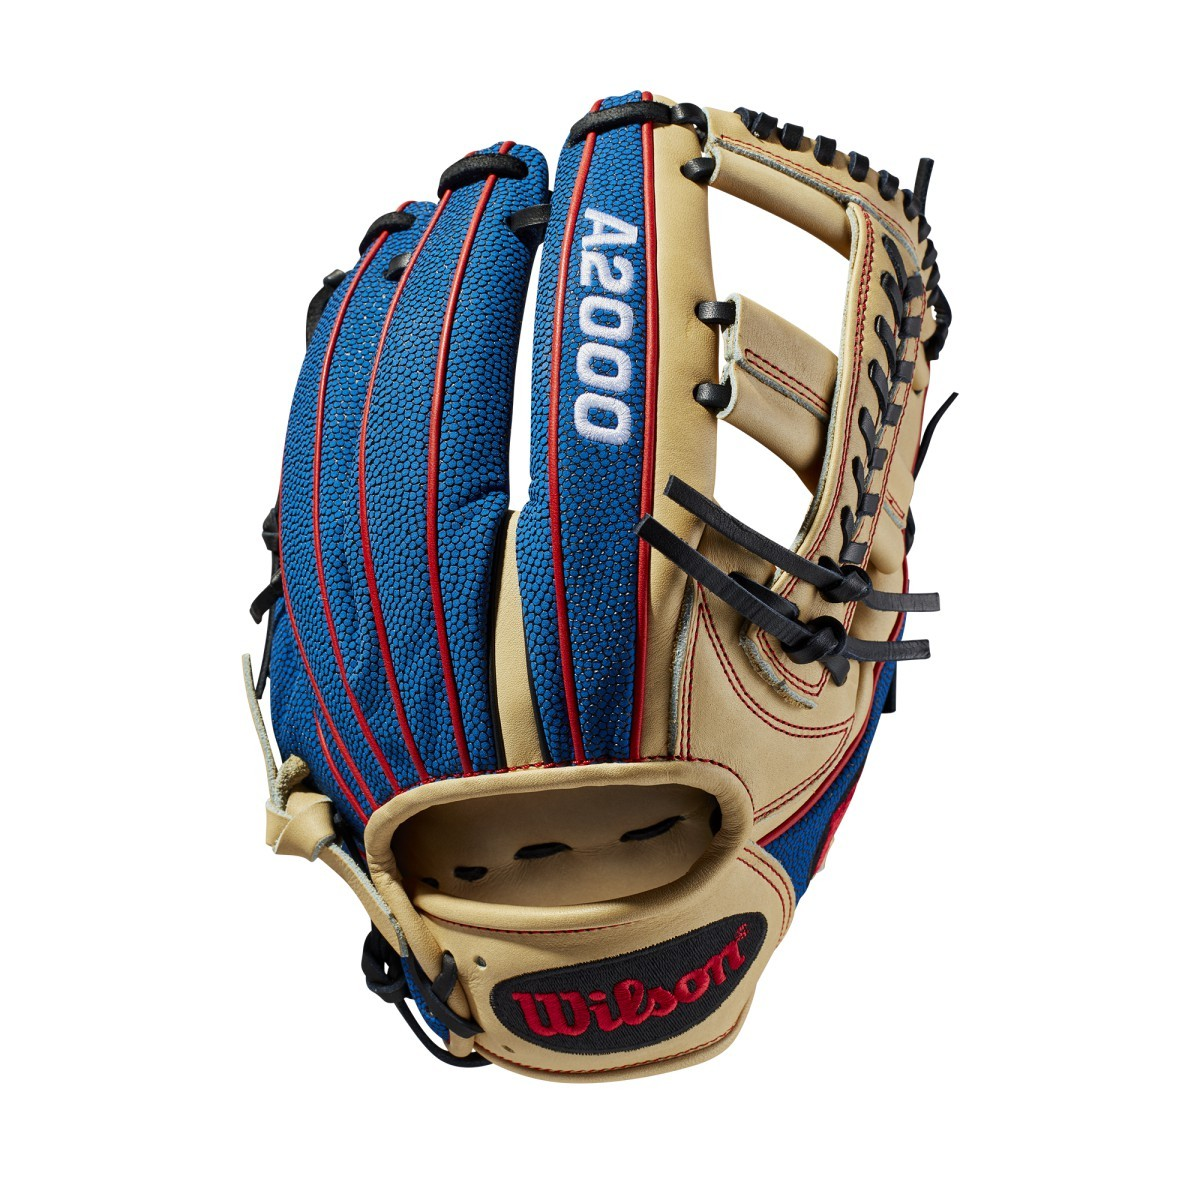 wilson-a2000-baseball-glove-11-75-right-hand-throw-1785 WTA20RB19LENOV-RightHandThrow Wilson 887768764661 Talk about a head-turner. This Blonde Pro Stock Leather-Blue SuperSkin custom